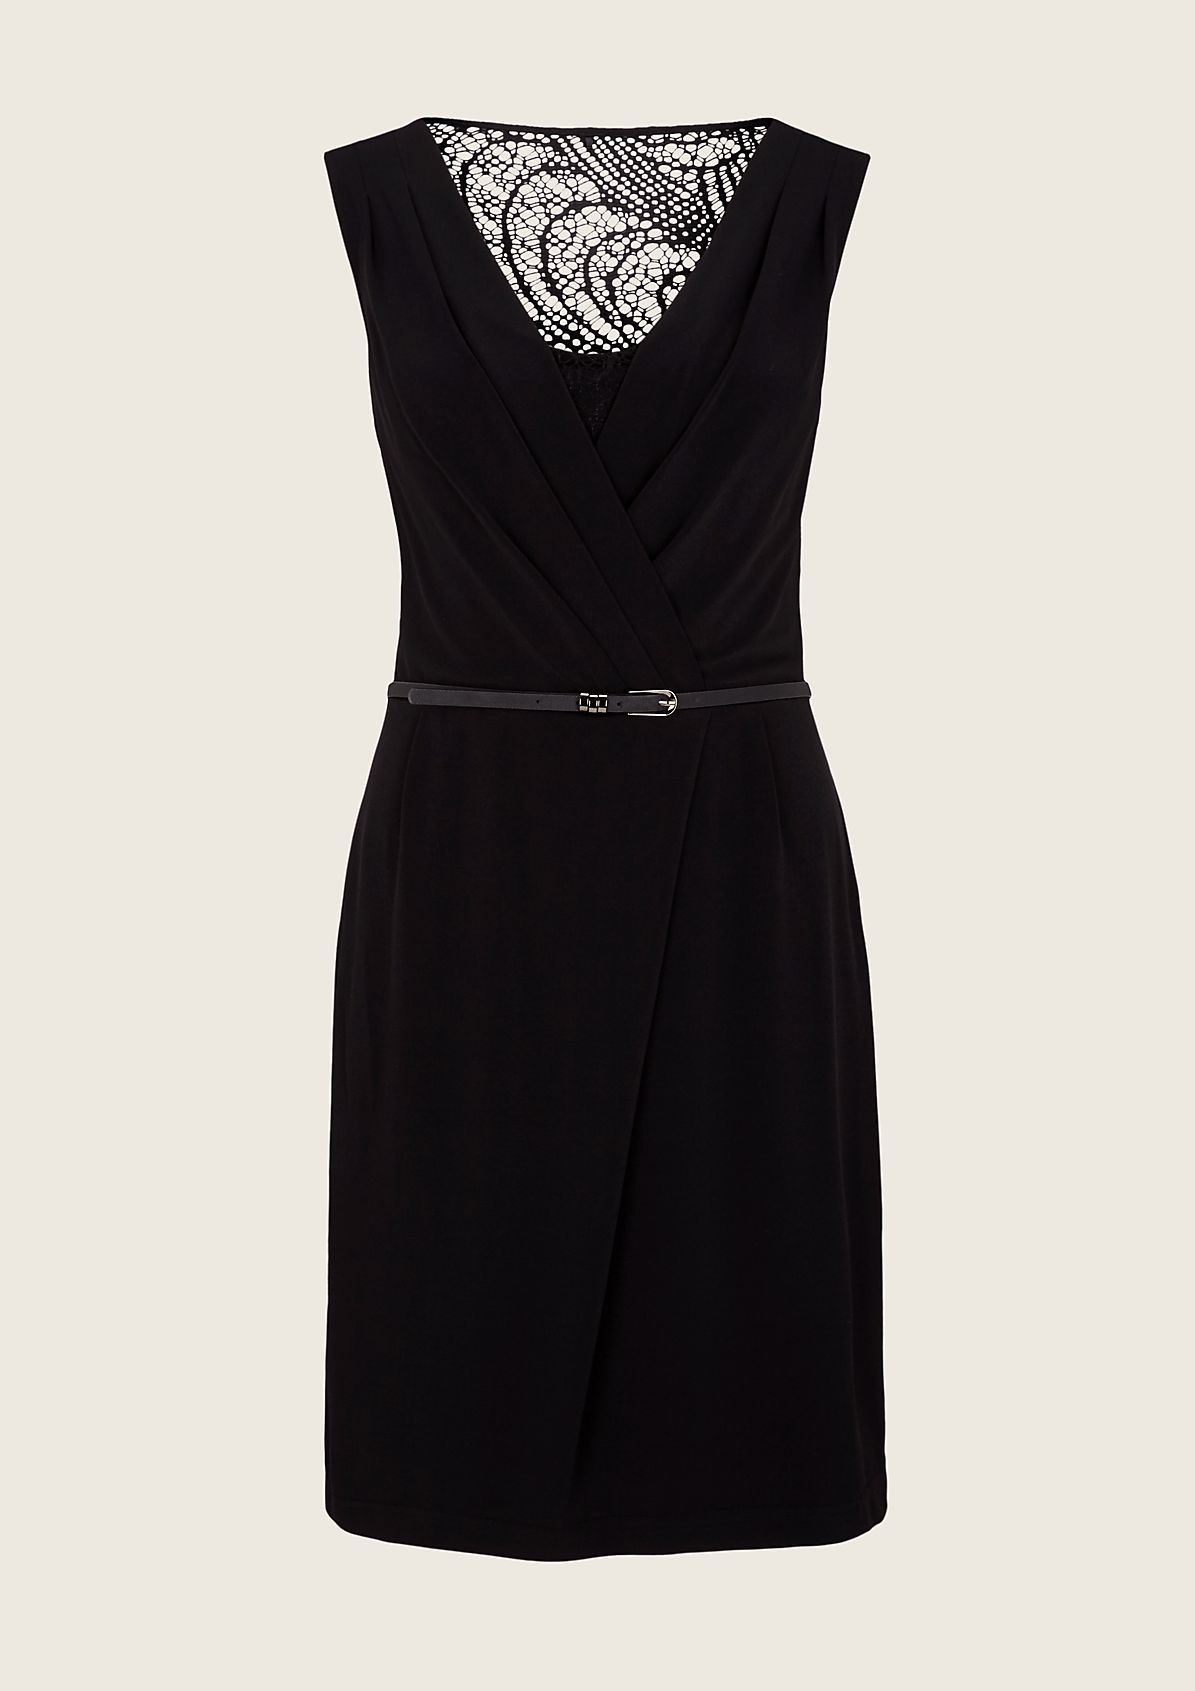 Extravagant evening dress with an elegant lace trim from s.Oliver